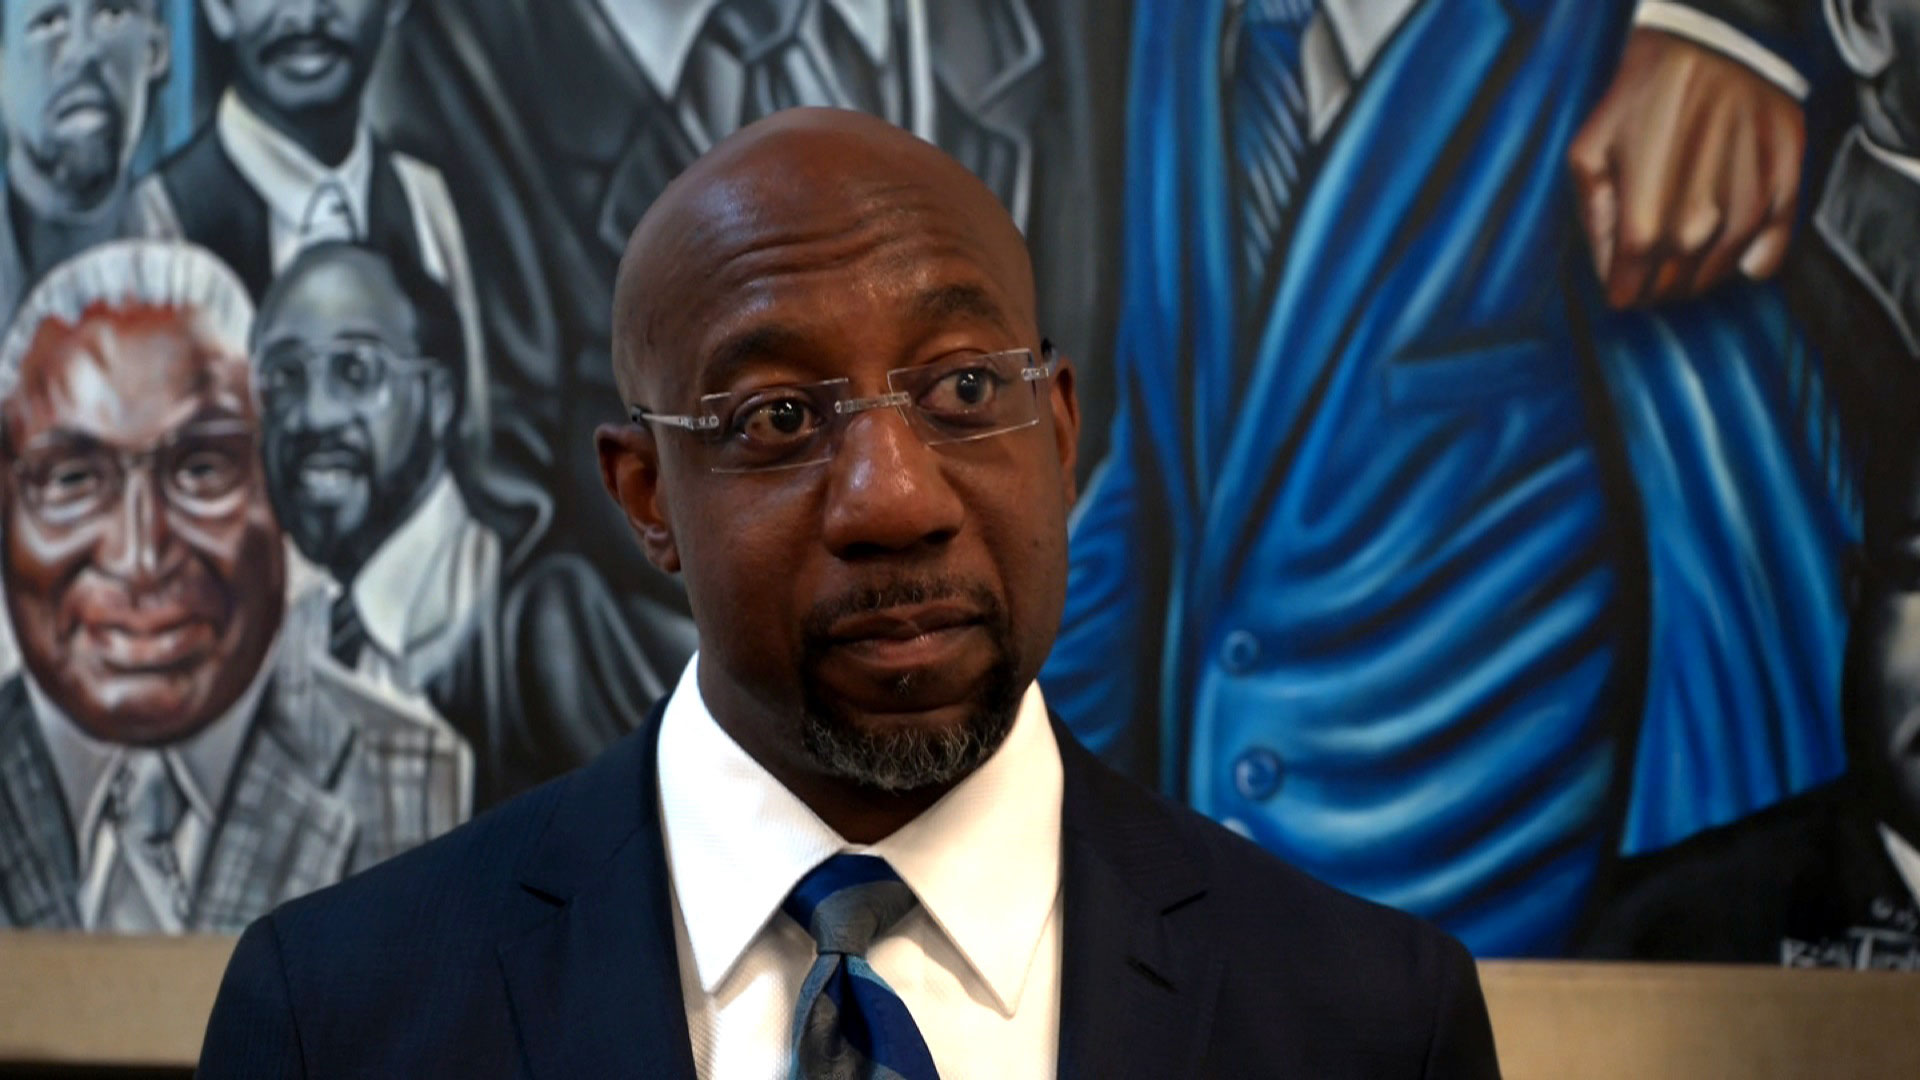 Rev. Raphael Warnock, speaks at Ebenezer Baptist Church on June 22 in Atlanta.